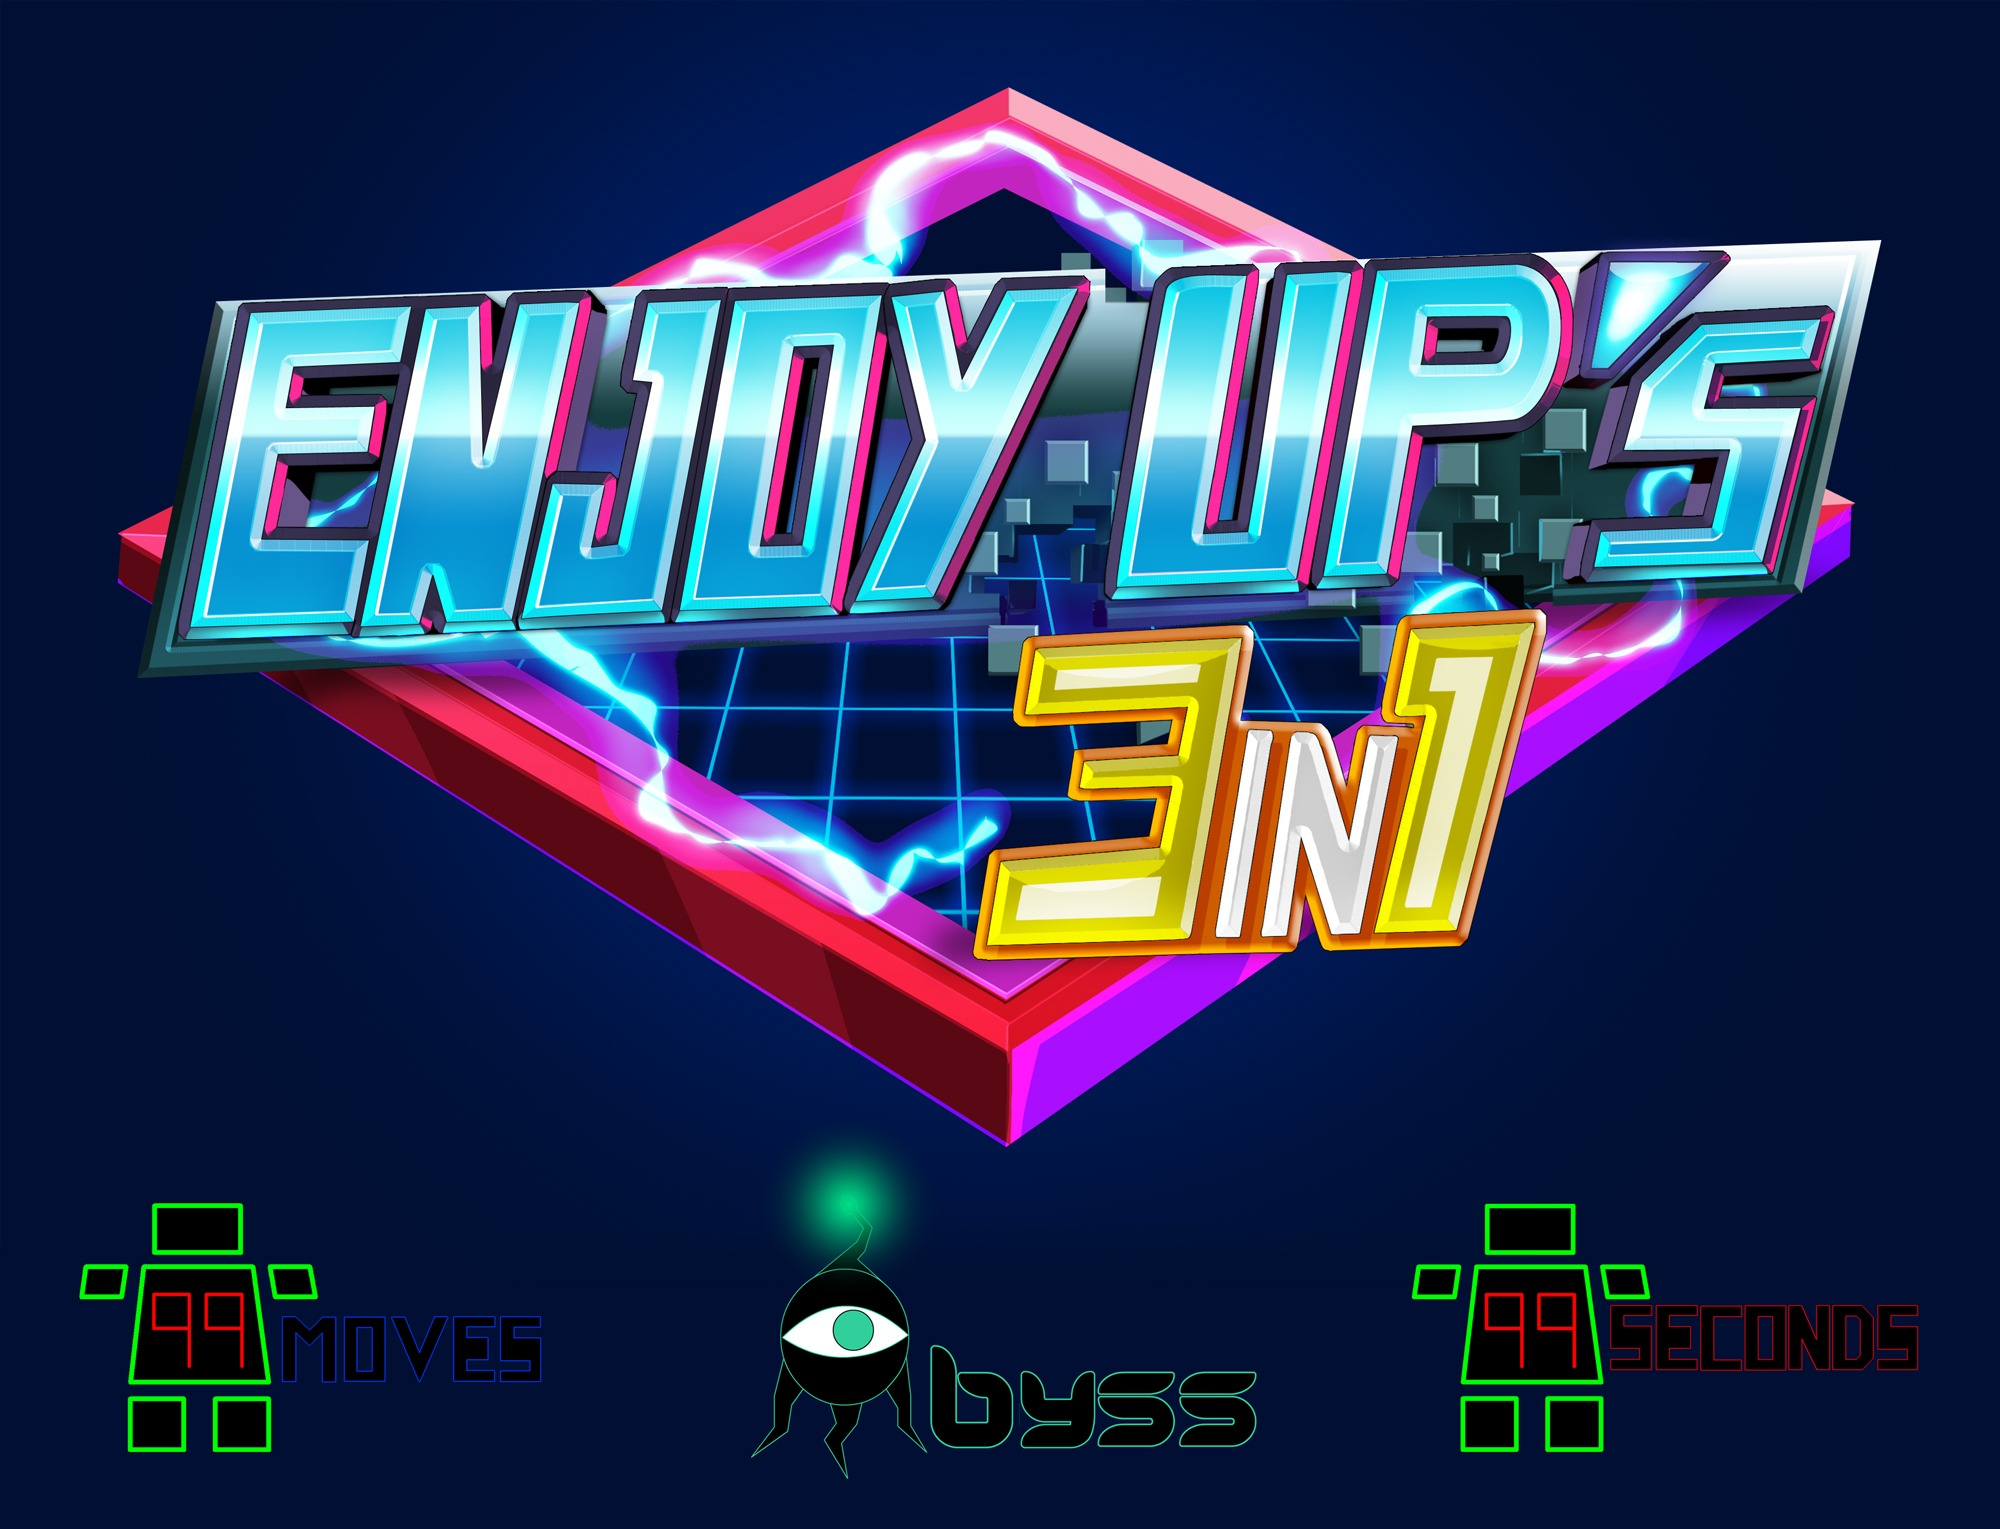 pochette compilation enjoyup 3in1